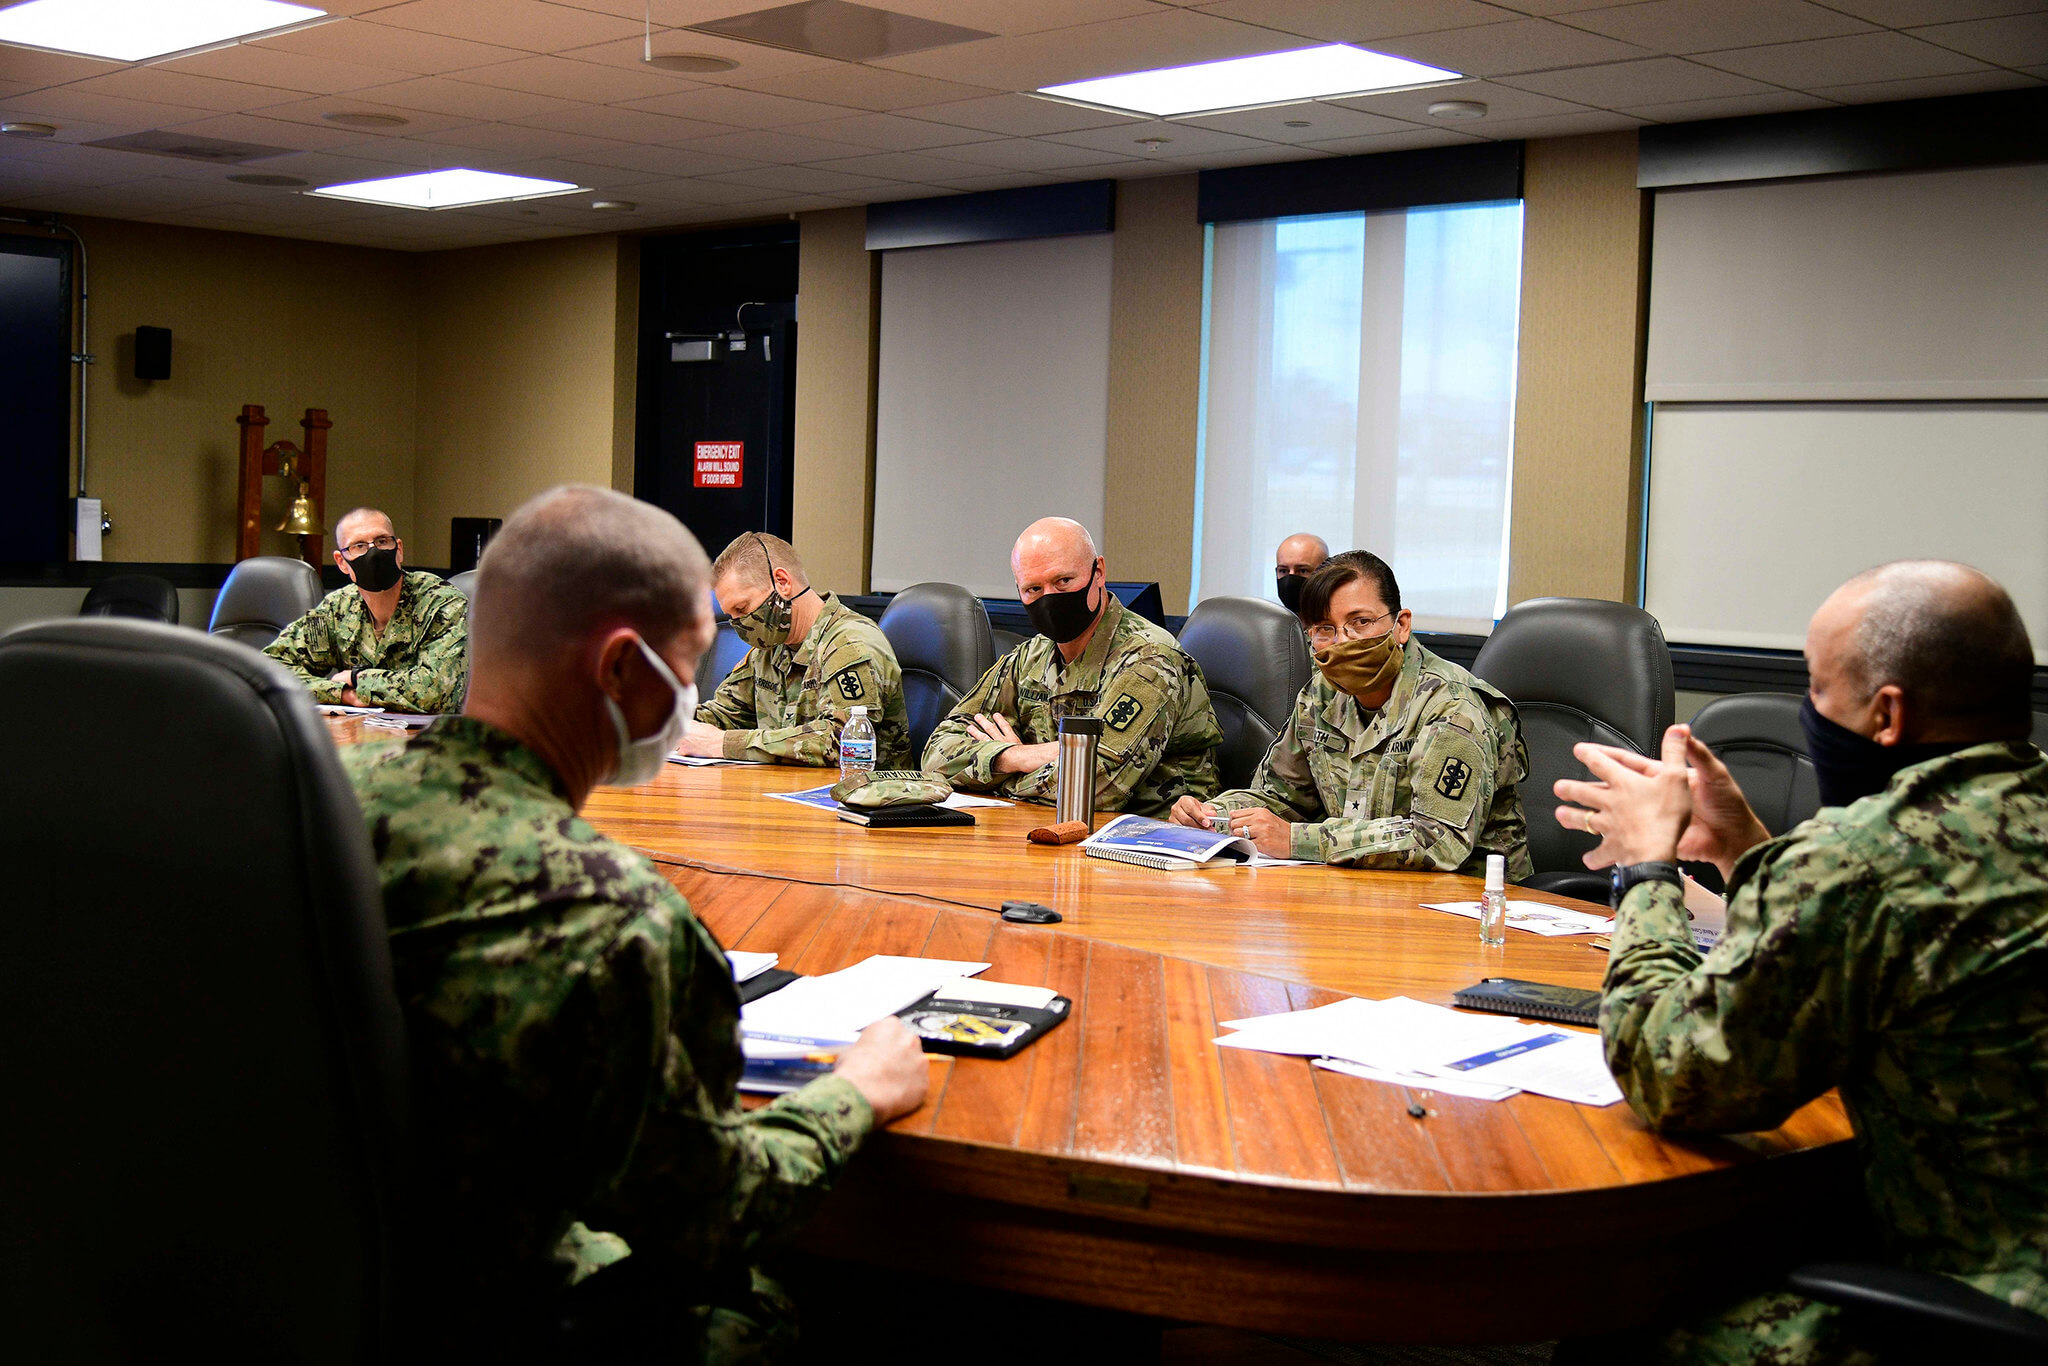 Klijn-COVID-19 response plan briefing by the Joint Region Marianas (JRM) in April 2020. U.S. Indo-Pacific Command